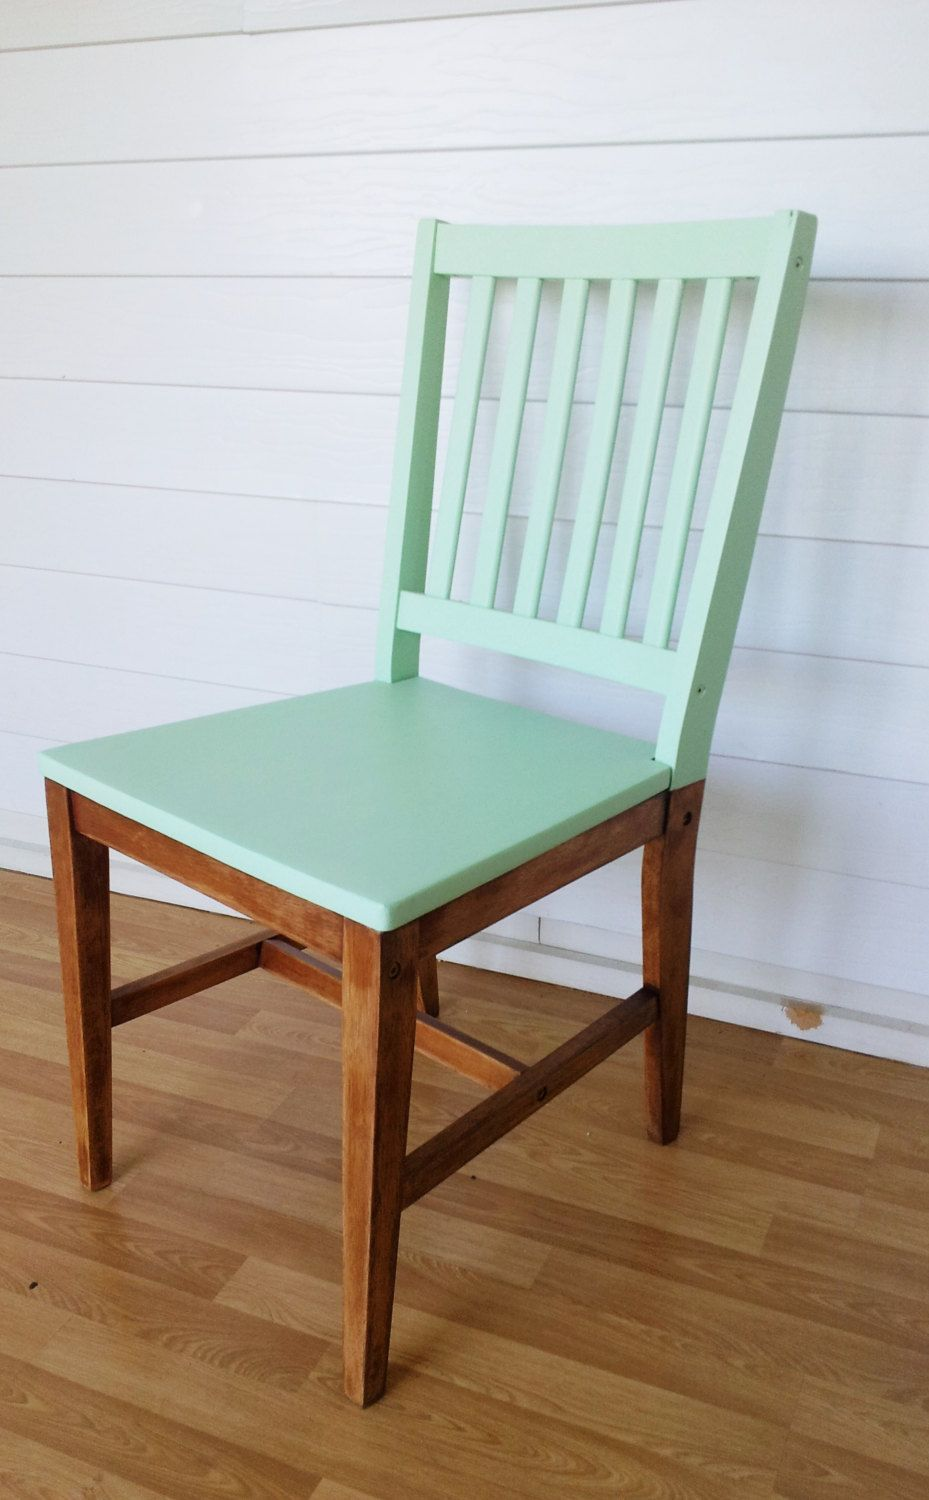 Paint just the top of your old wooden chairs to give them a fresh minty look! LOVE this idea!!! & genius! Paint just the top of your old wooden chairs to give them a ...